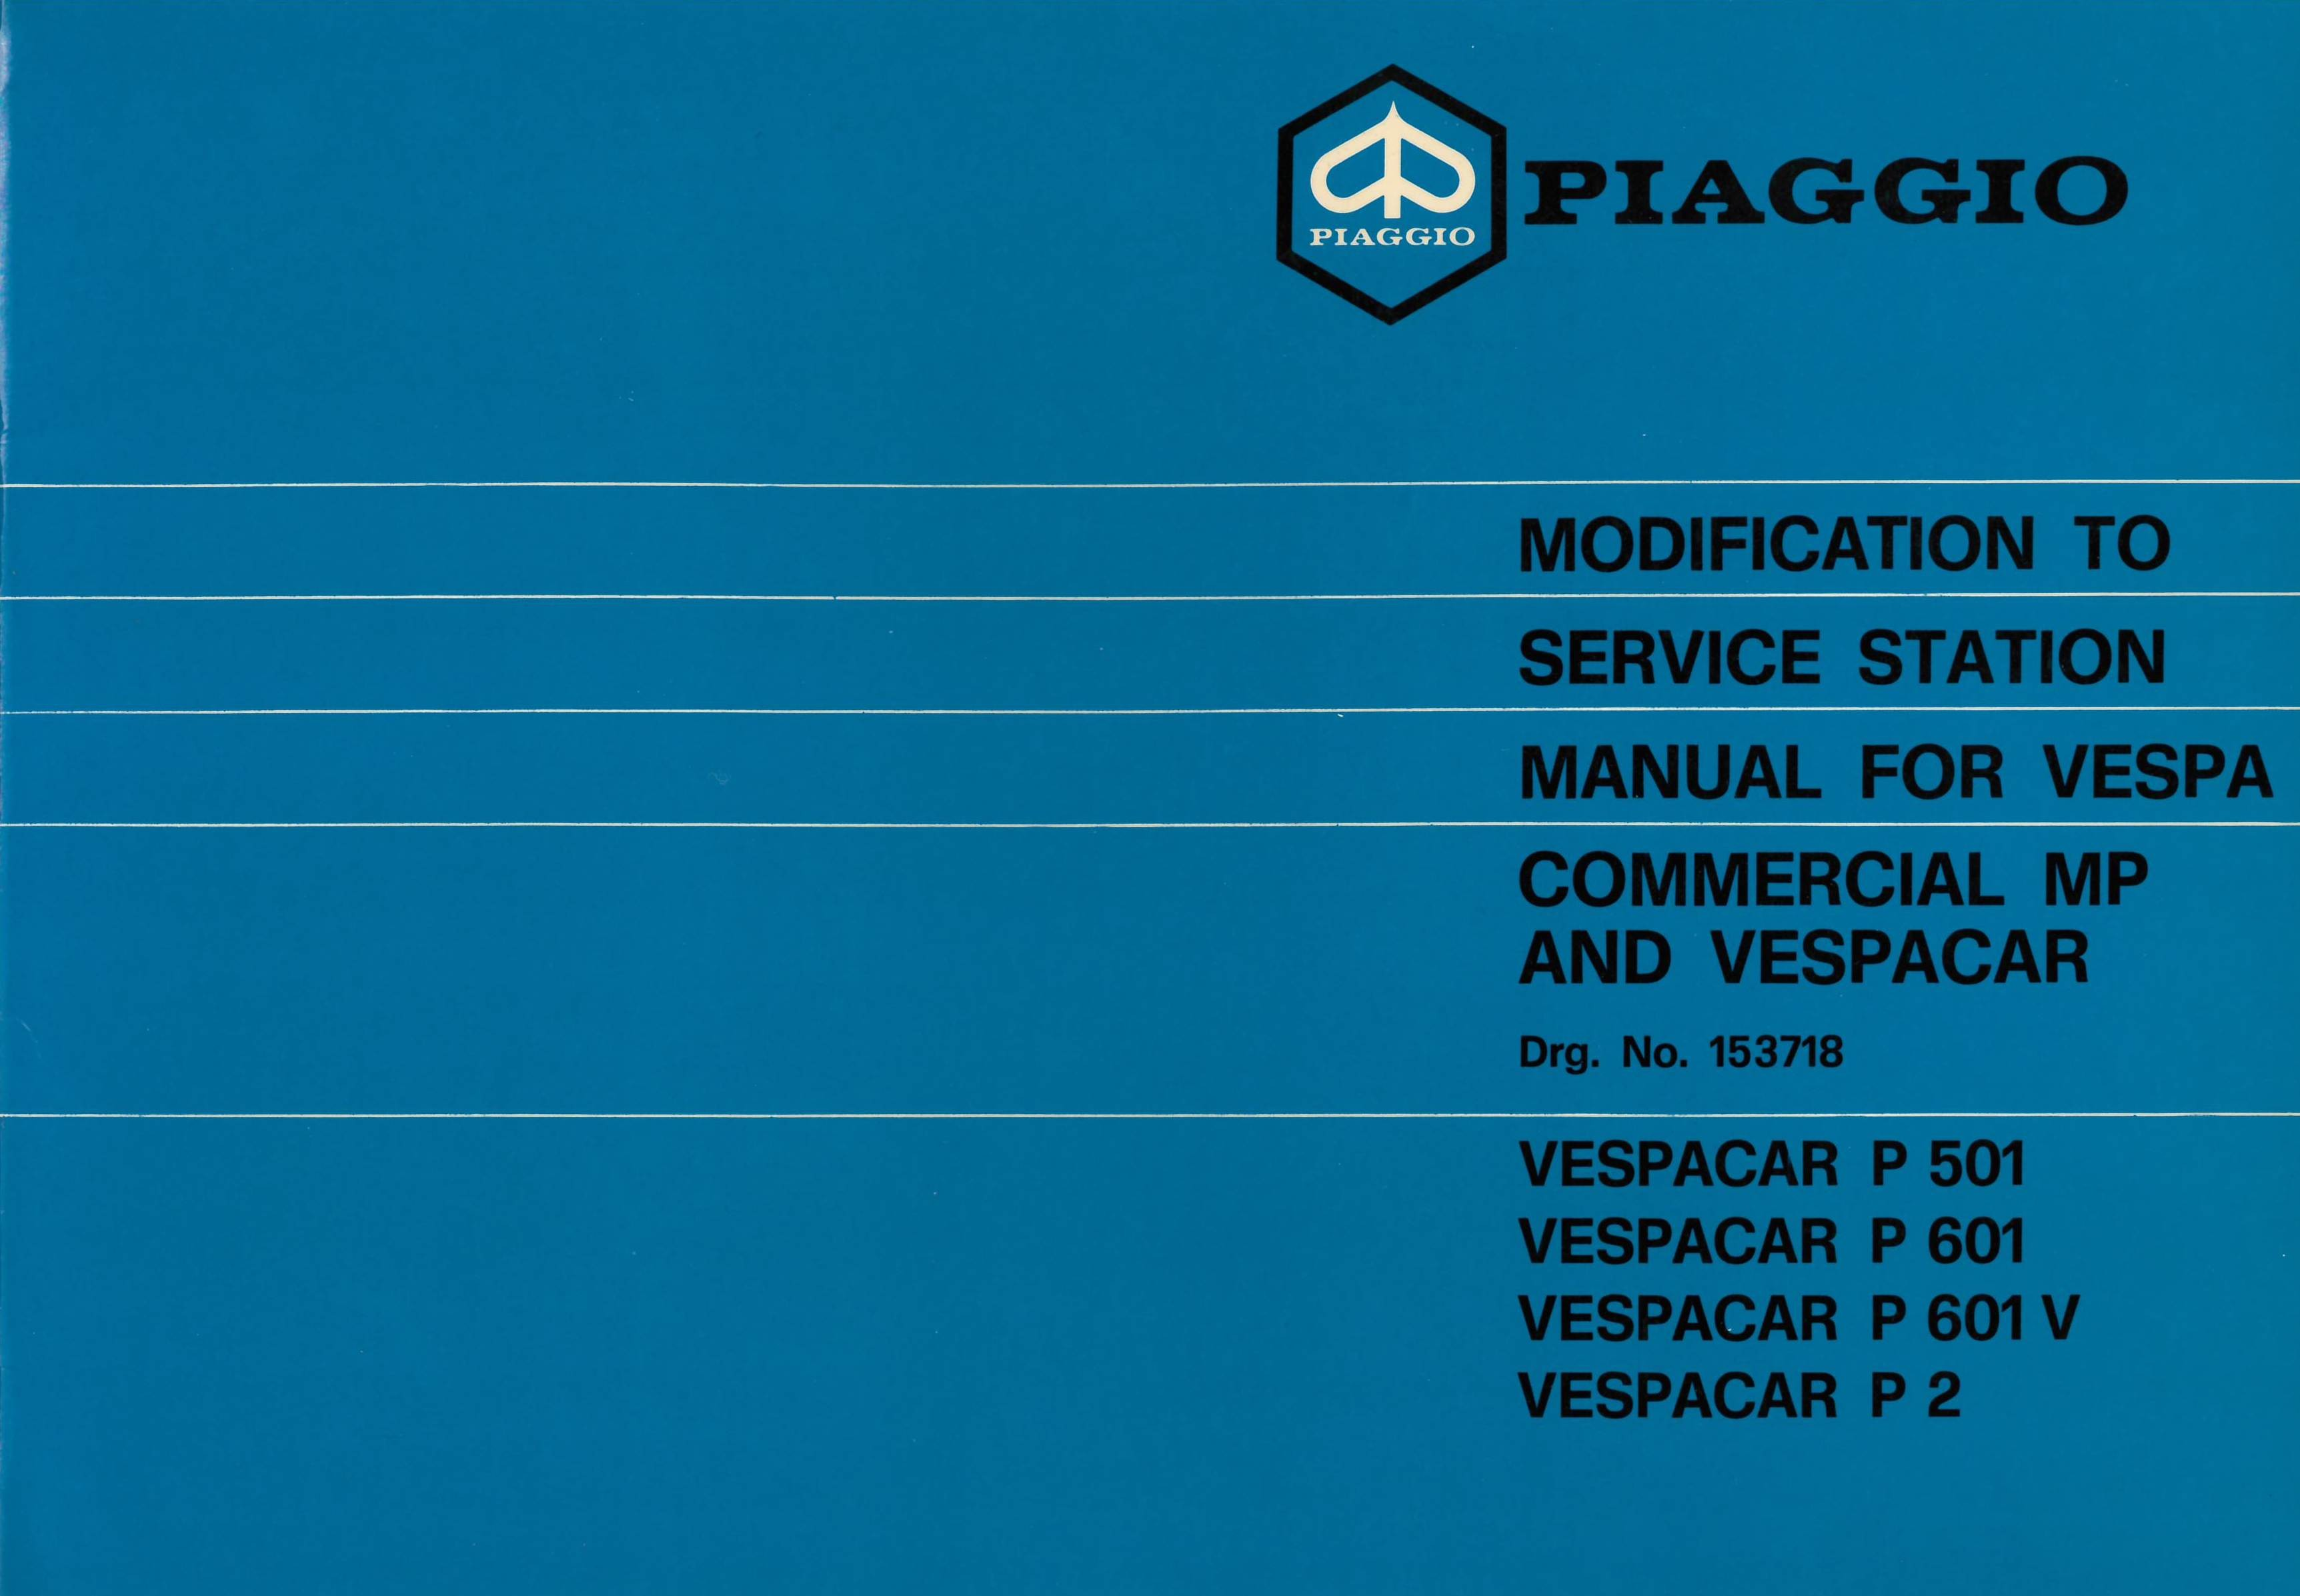 Service Station Manual Piaggio Ape Mp P501 Mpr2t P601 Mpm1t P601v 50 Elestart Model V5a3t Wiring Diagram All About Diagrams Mpv1t Vespacar P2 Af1t English Vespadoc